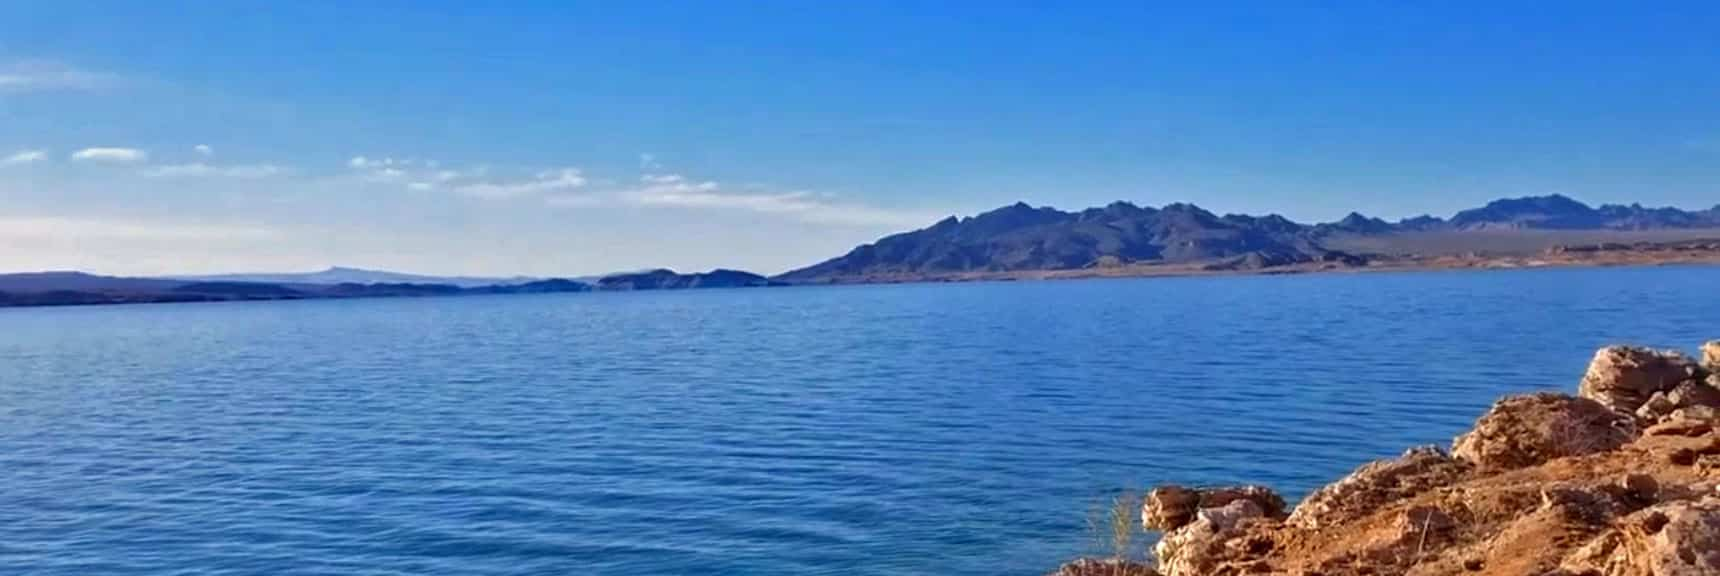 Overton Arm of Lake Mead in Lake Mead National Park Nevada